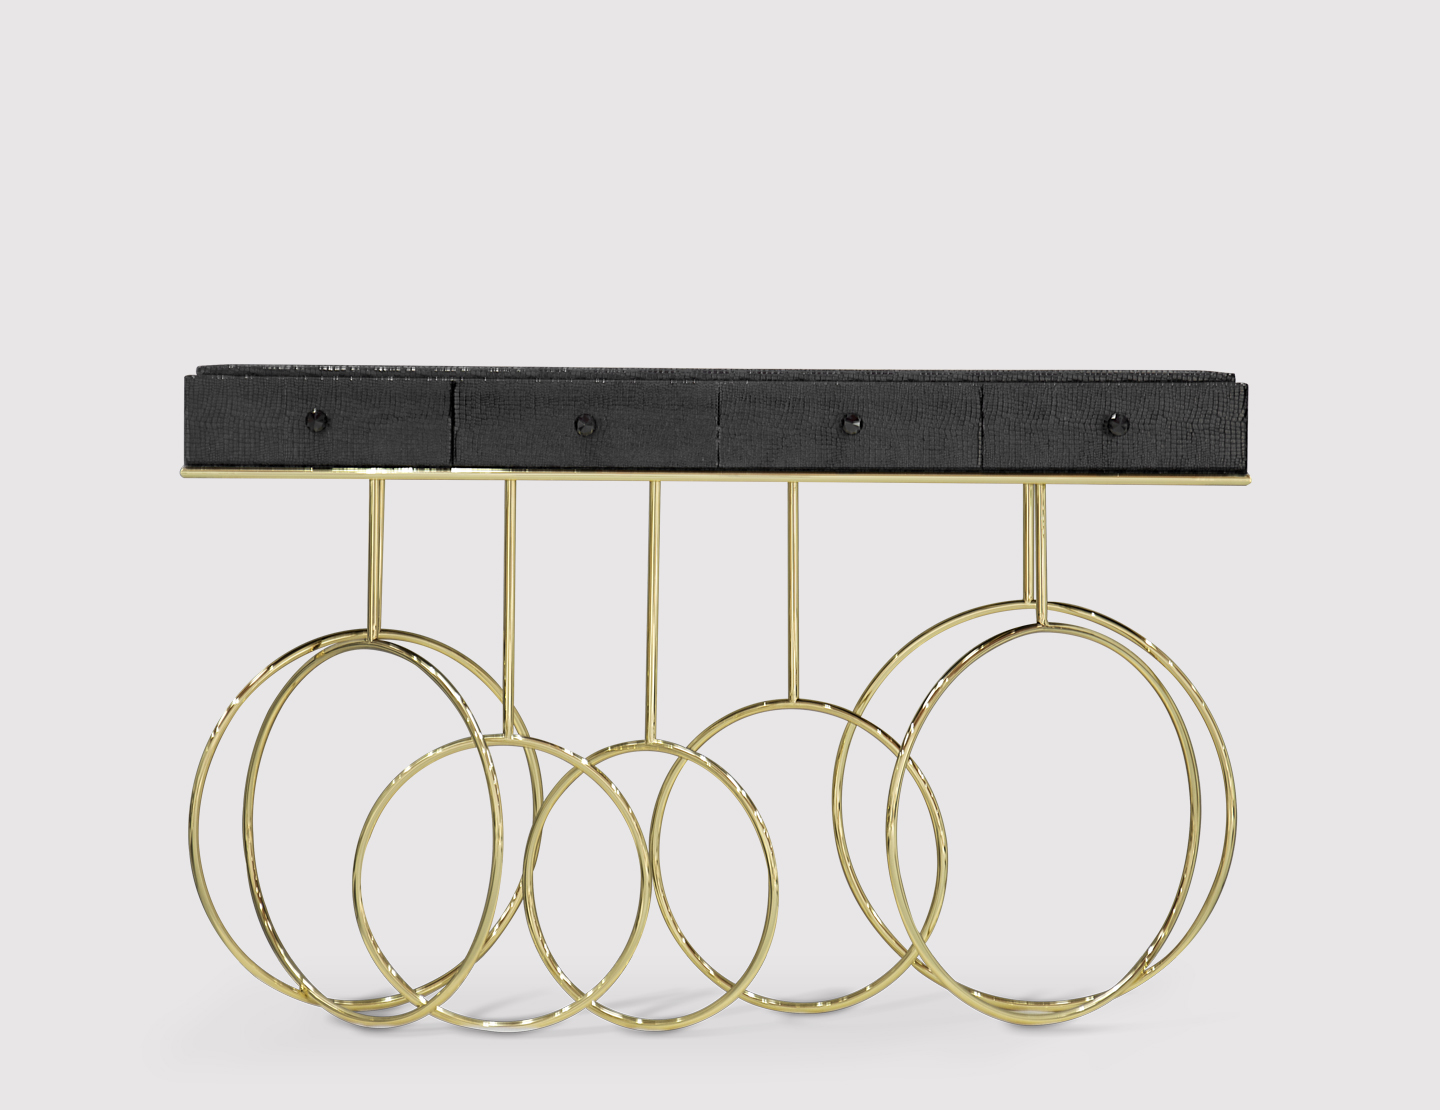 Burlesque Console By Koket